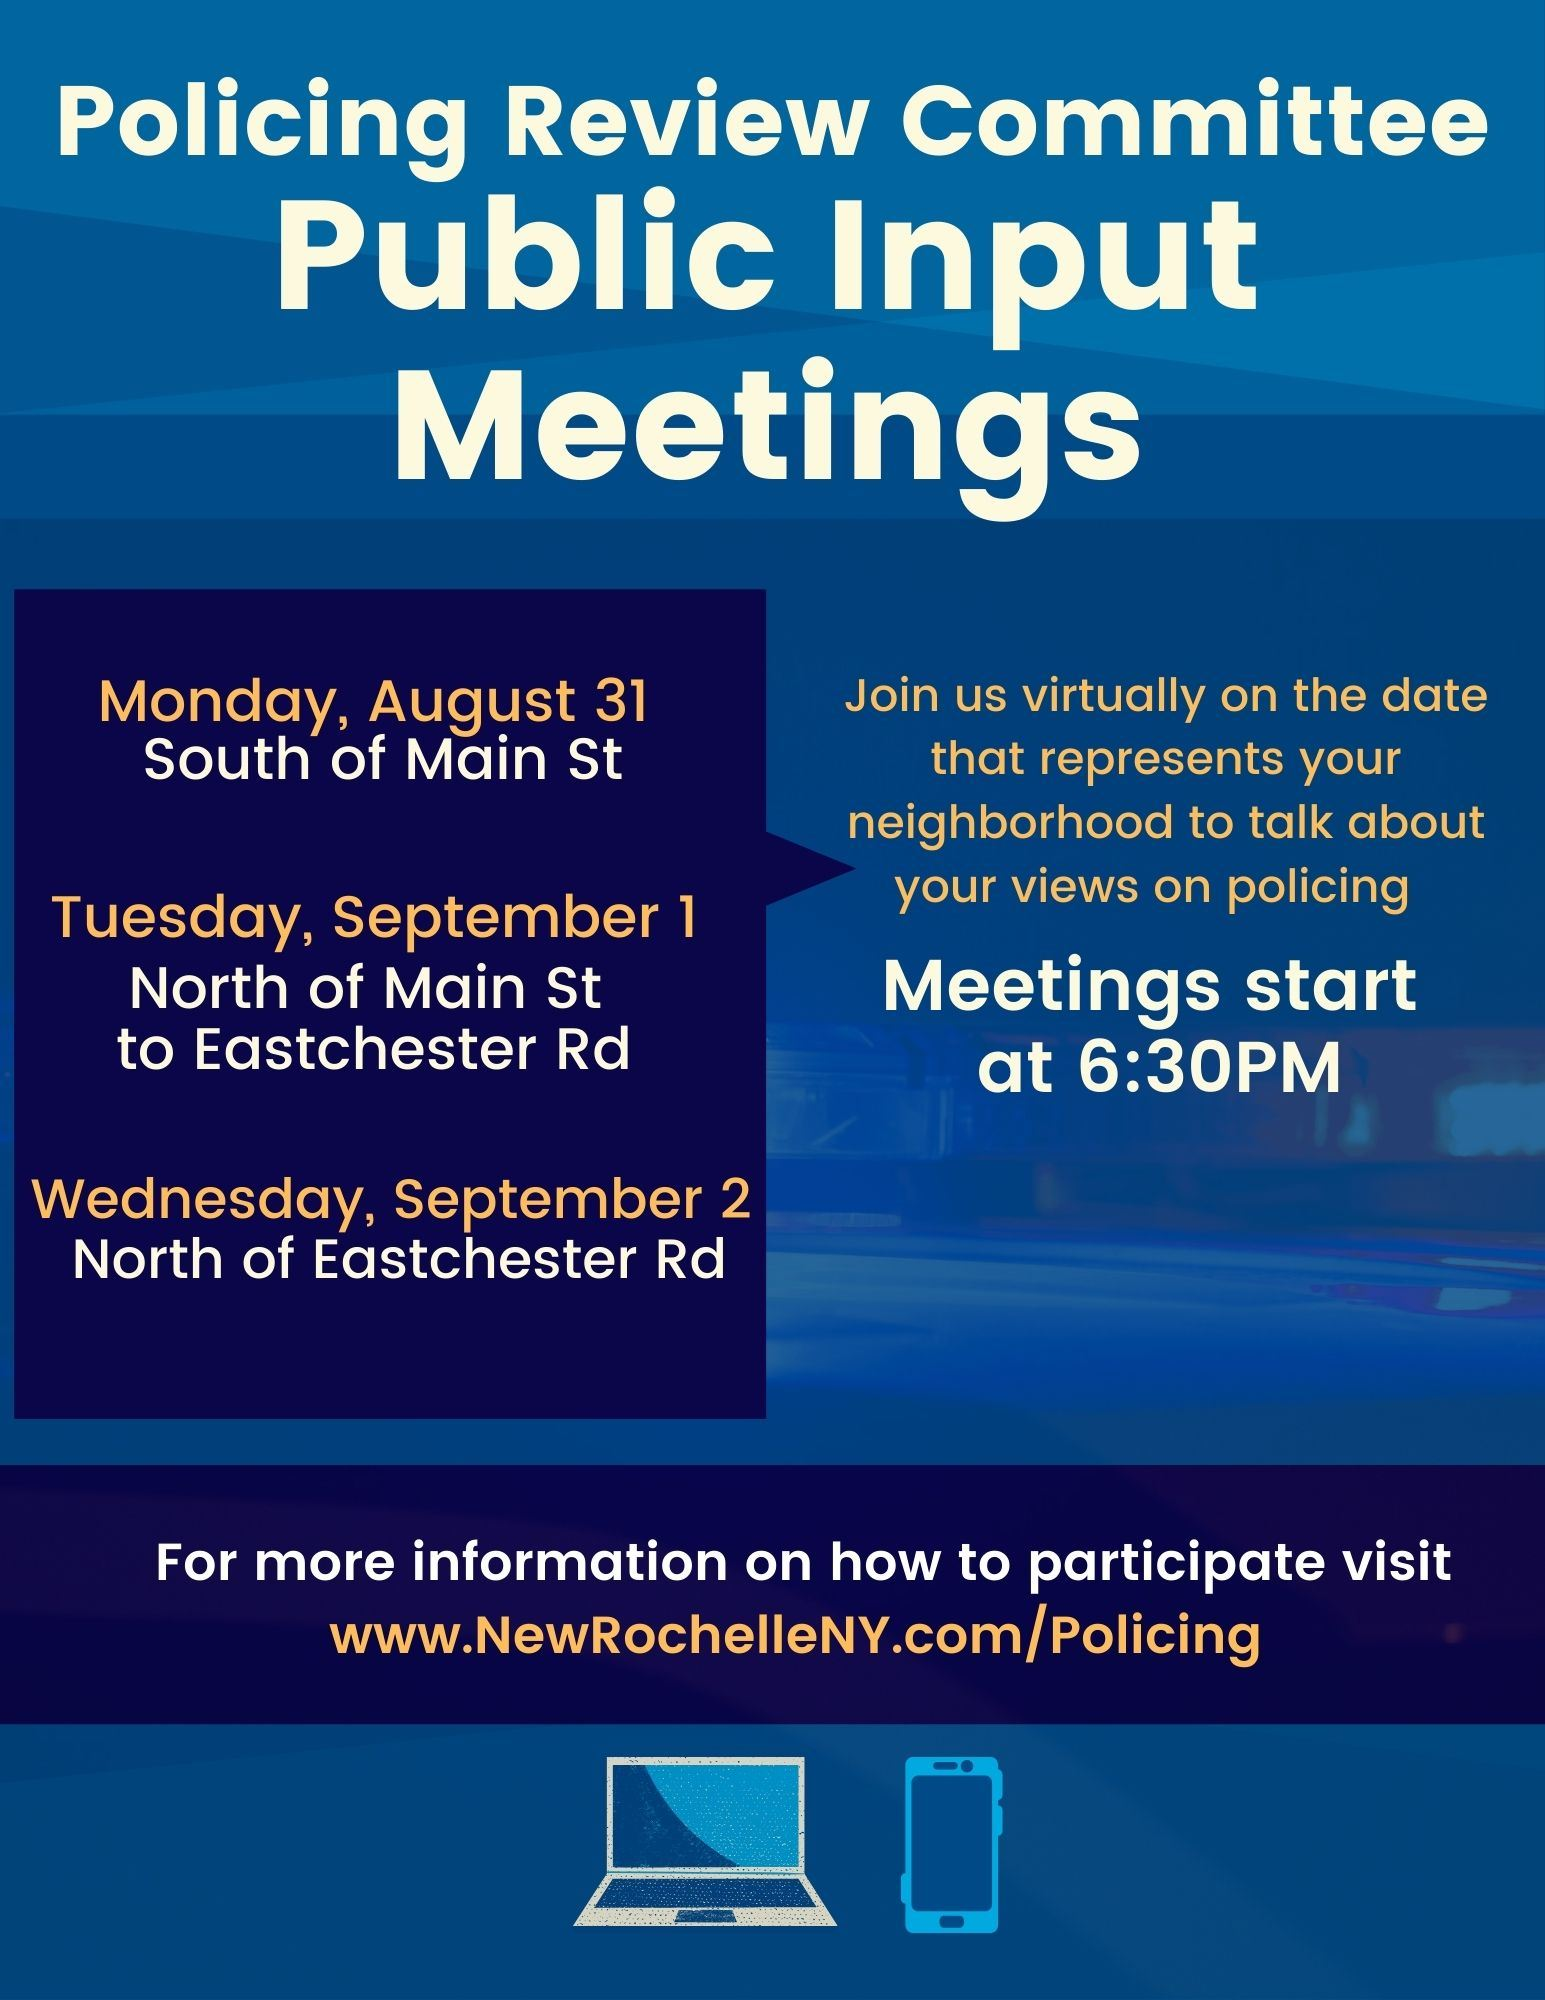 Flyer for Policing Review Committee Public Input Meetings